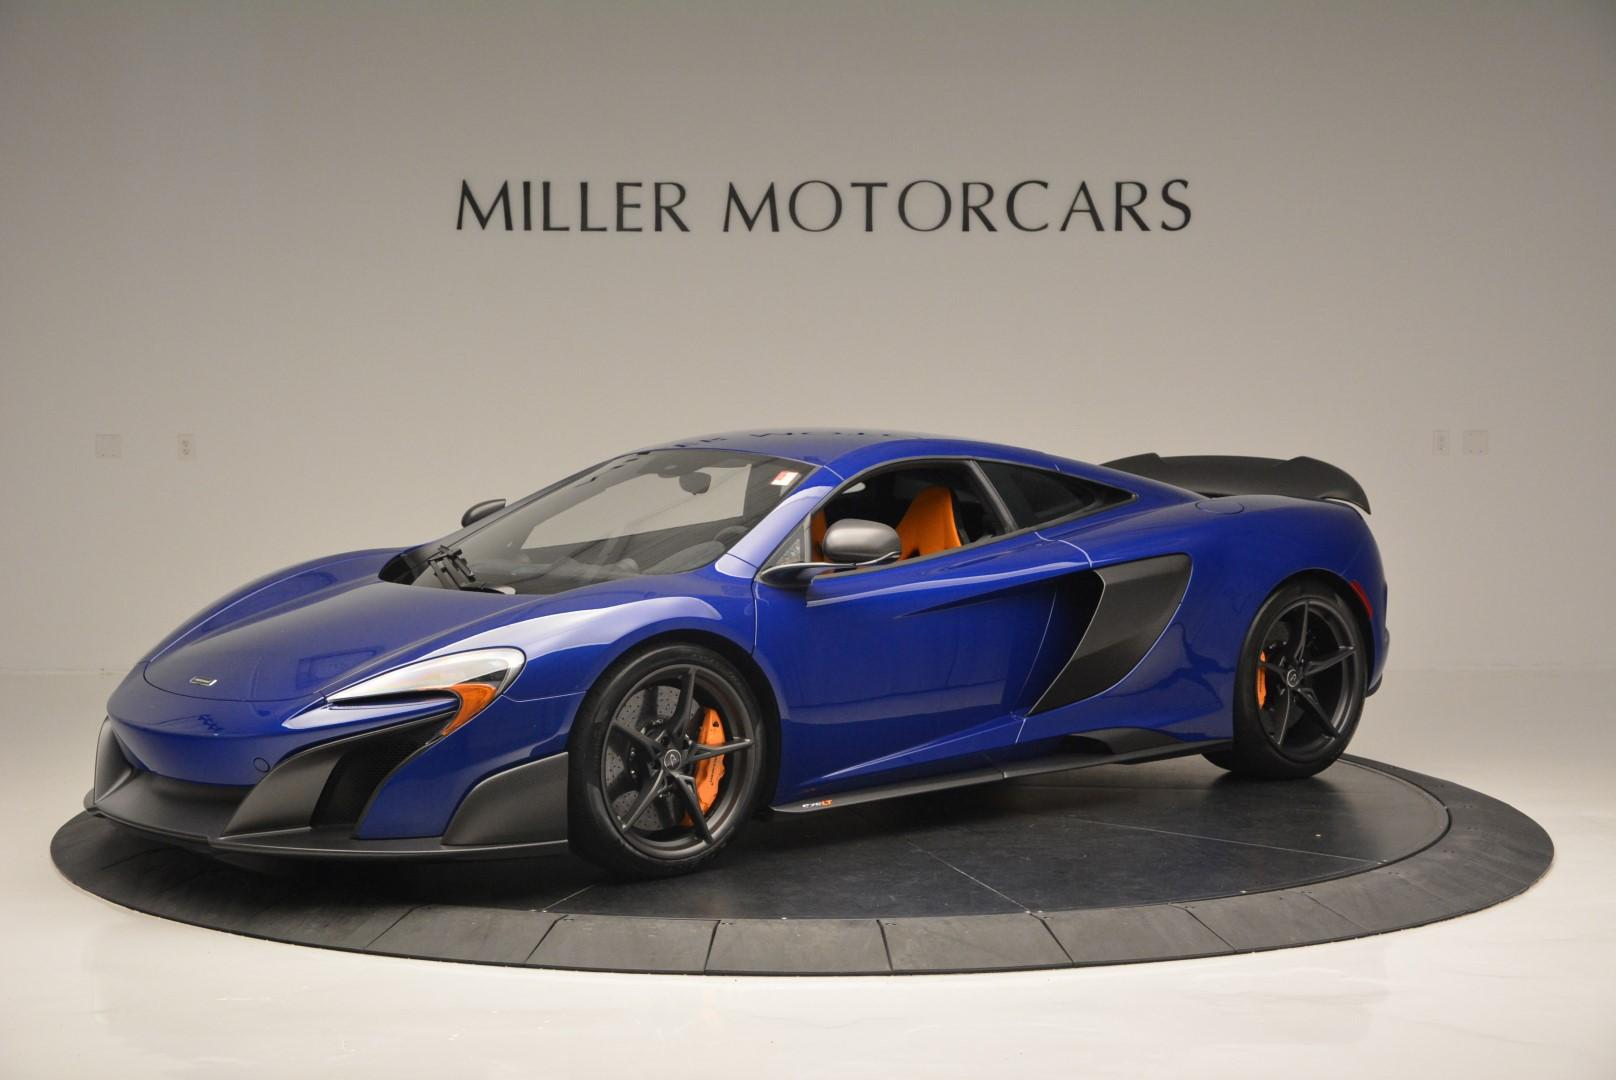 Used 2016 McLaren 675LT Coupe for sale Sold at Bugatti of Greenwich in Greenwich CT 06830 1